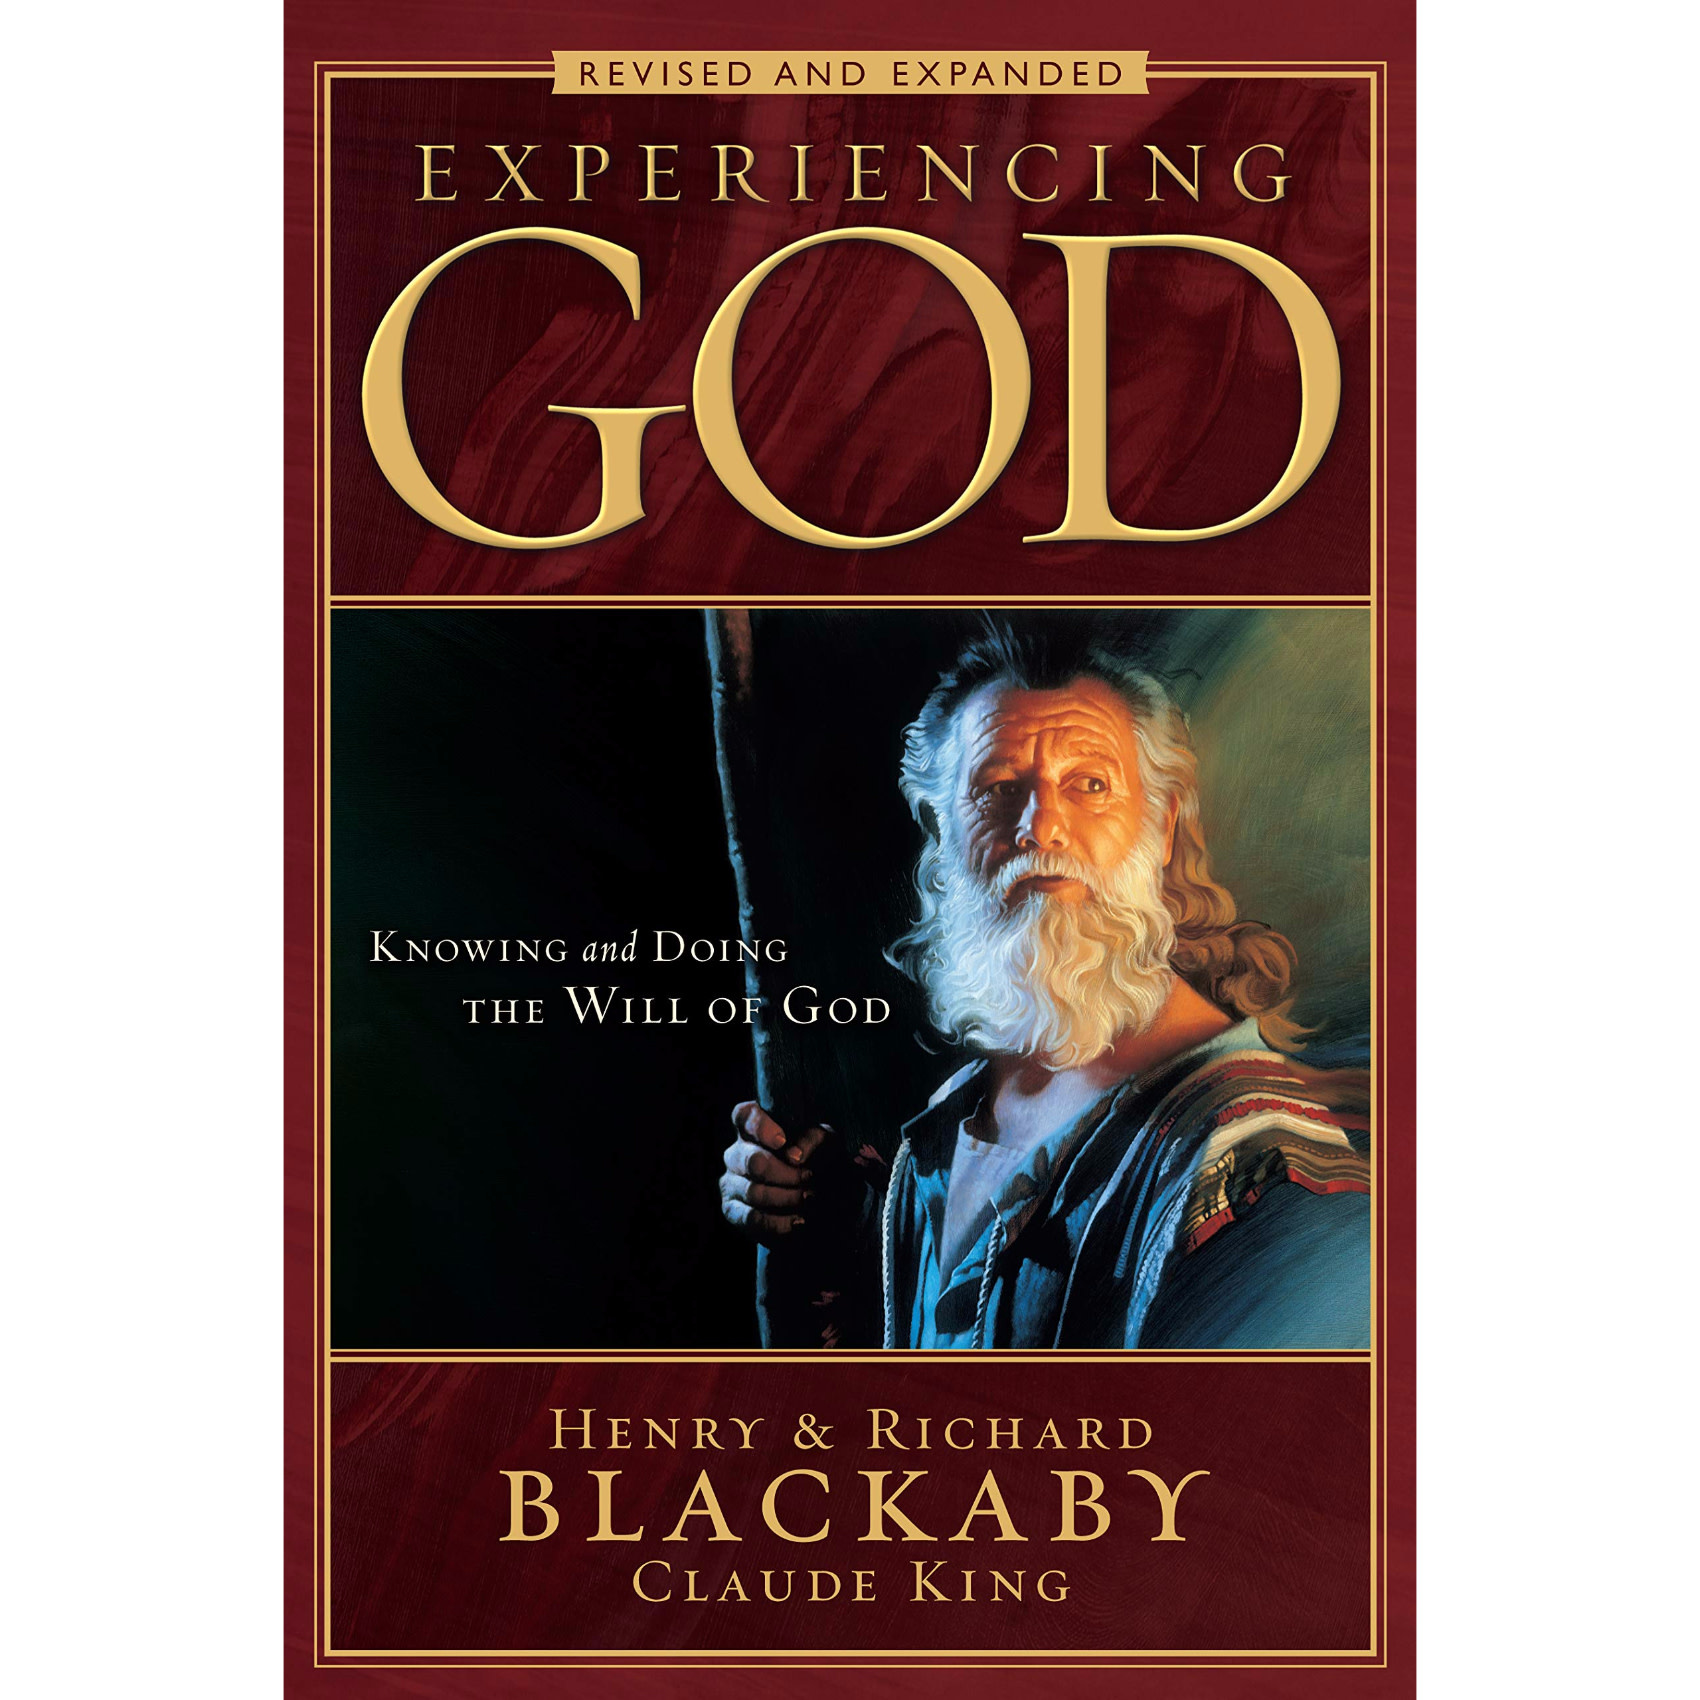 Henry Blackaby Experiencing God Workbook: Knowing and Doing the Will of God, Member Book, Updated